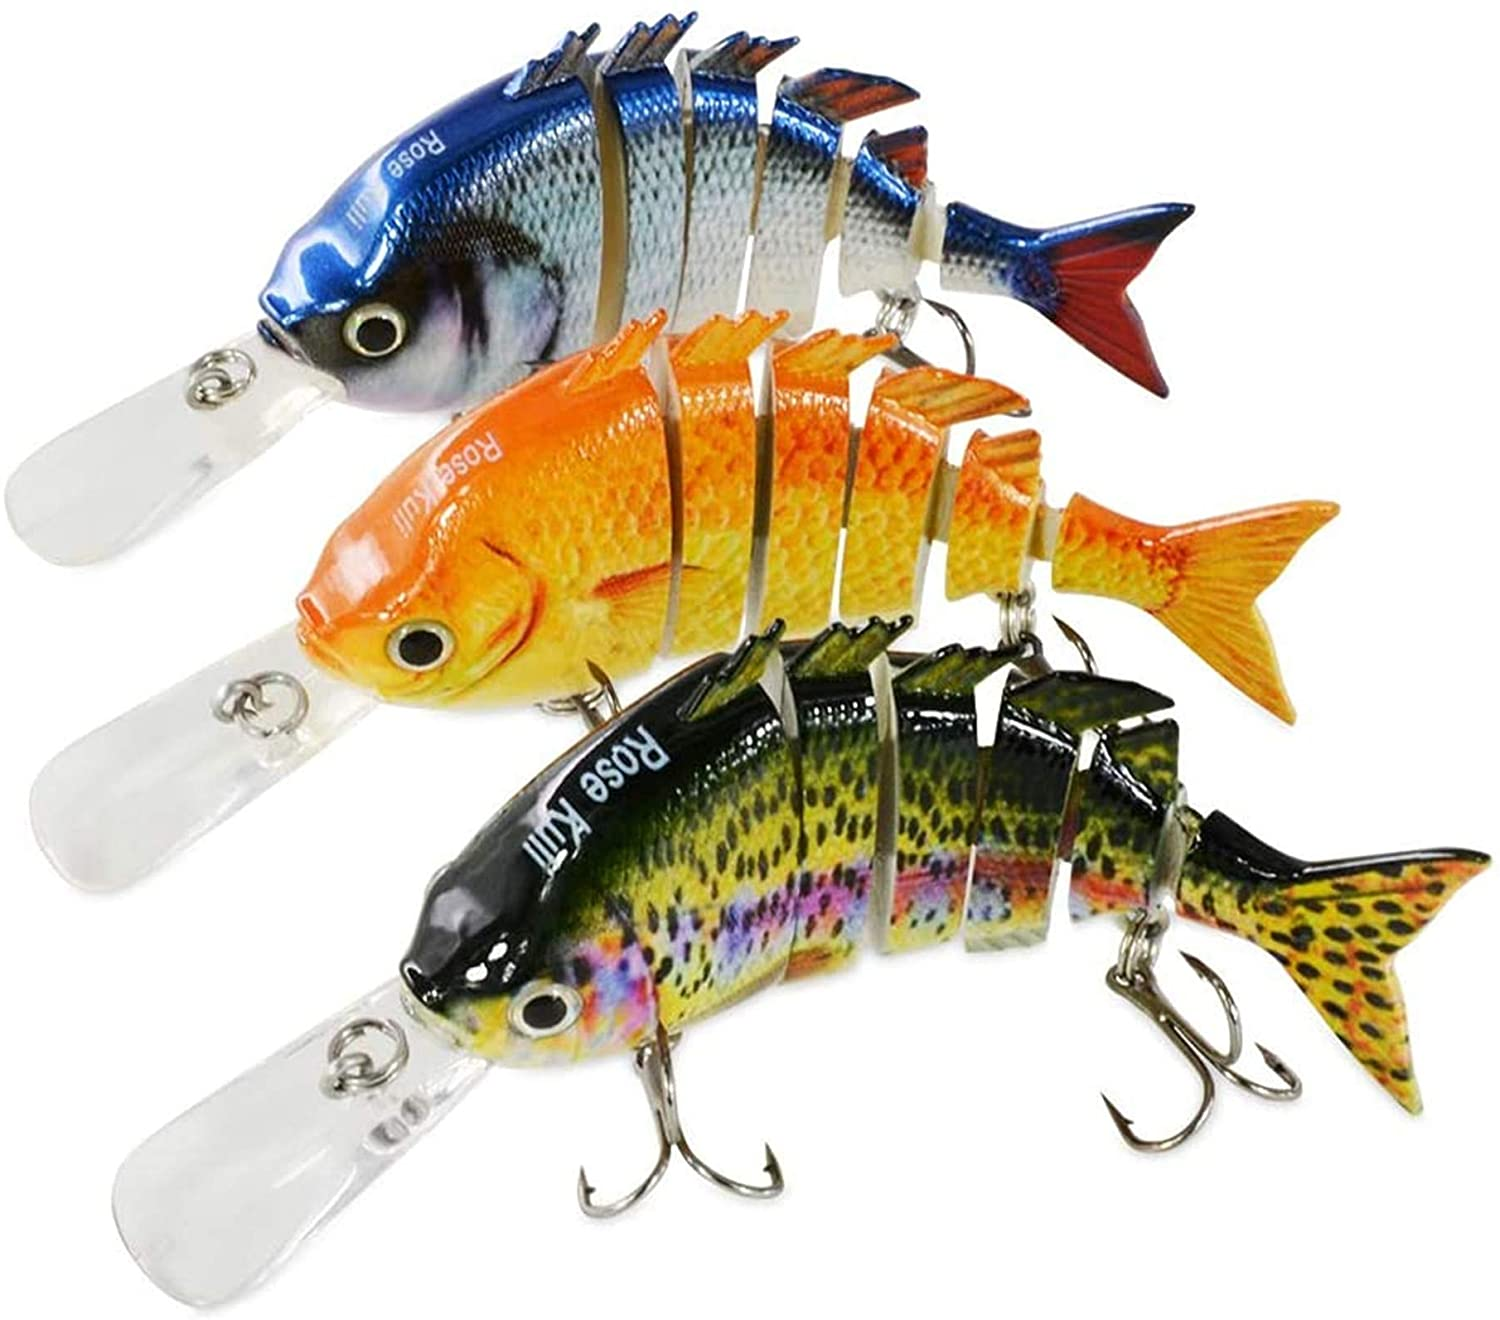 Rose Kuli Fishing Lures Lifelike Bass Lures Multi Jointed Swimbaits Slow Sinking Hard Bait best crankbait